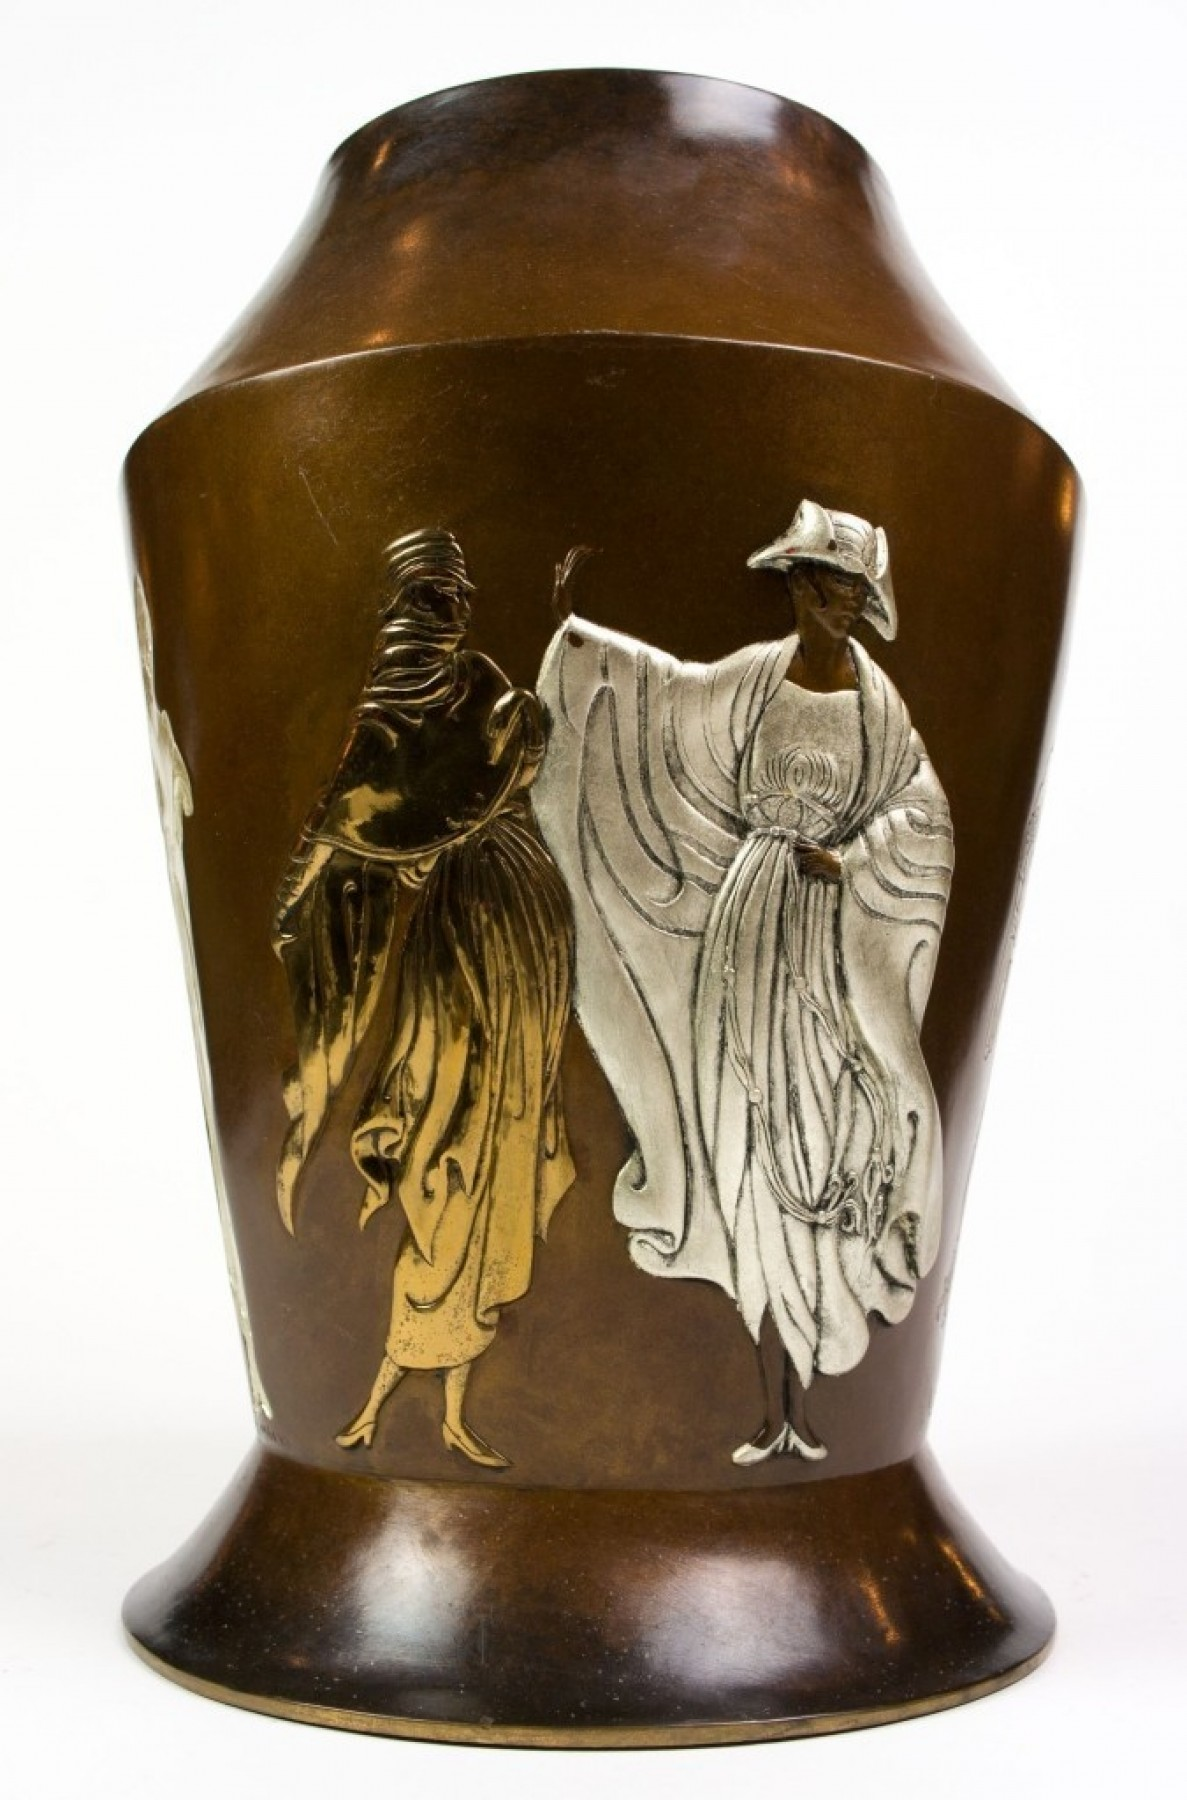 Celebration Objets D'art Bronze  Vase 1986 17 in